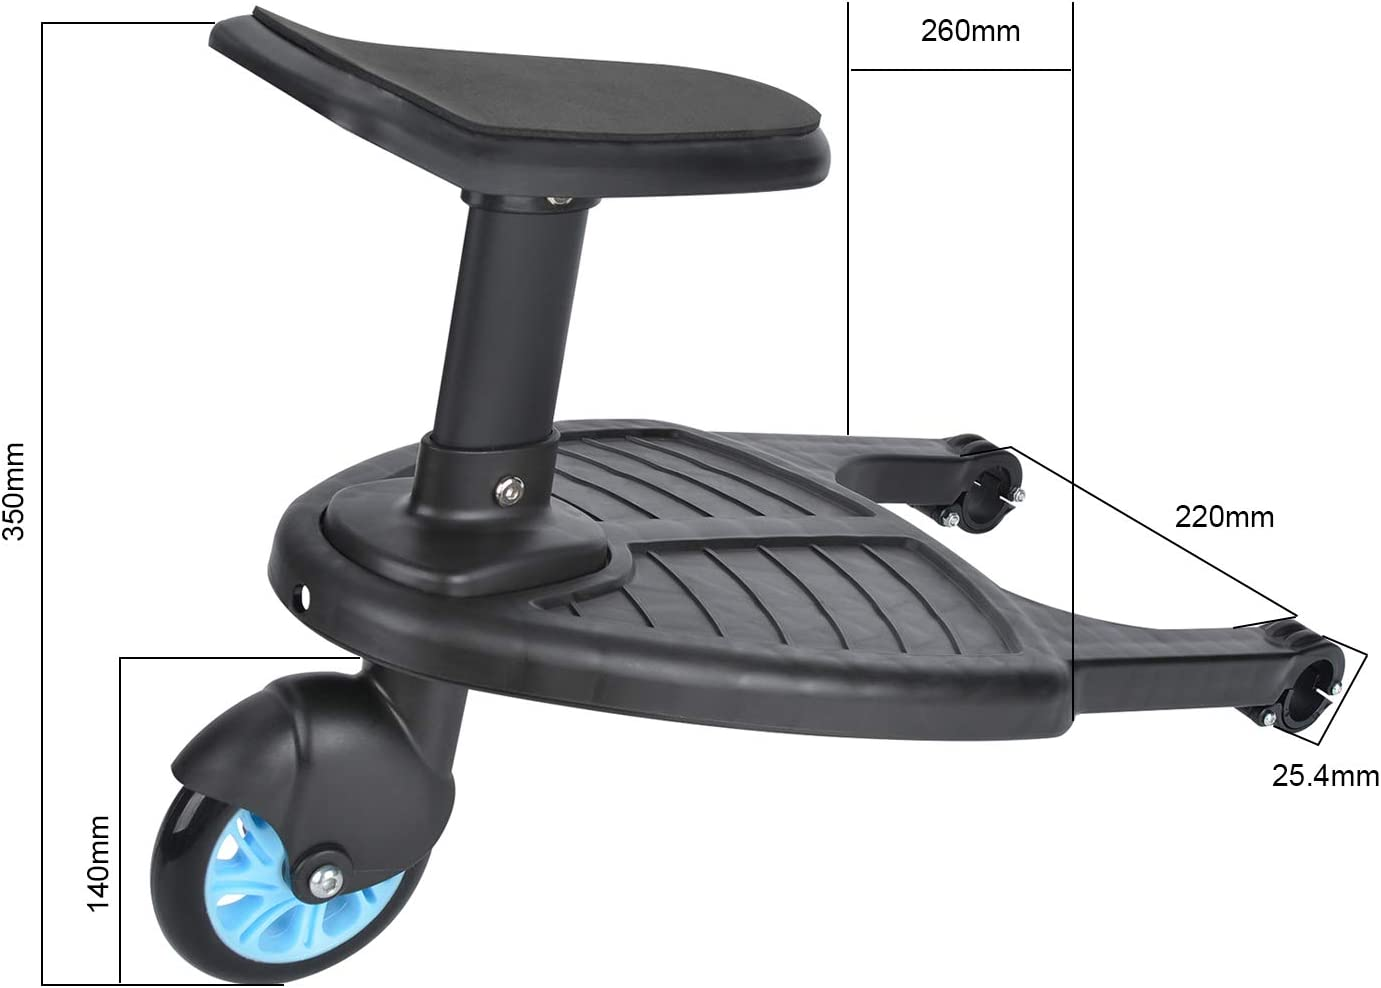 Blue Holds Children Up to 25kg Wheeled Buggy Board with Seat Baby Jogger Travel Pram Toddler Buggy Stroller Step Board Stand Child Kids Wheeled Pushchair Connector